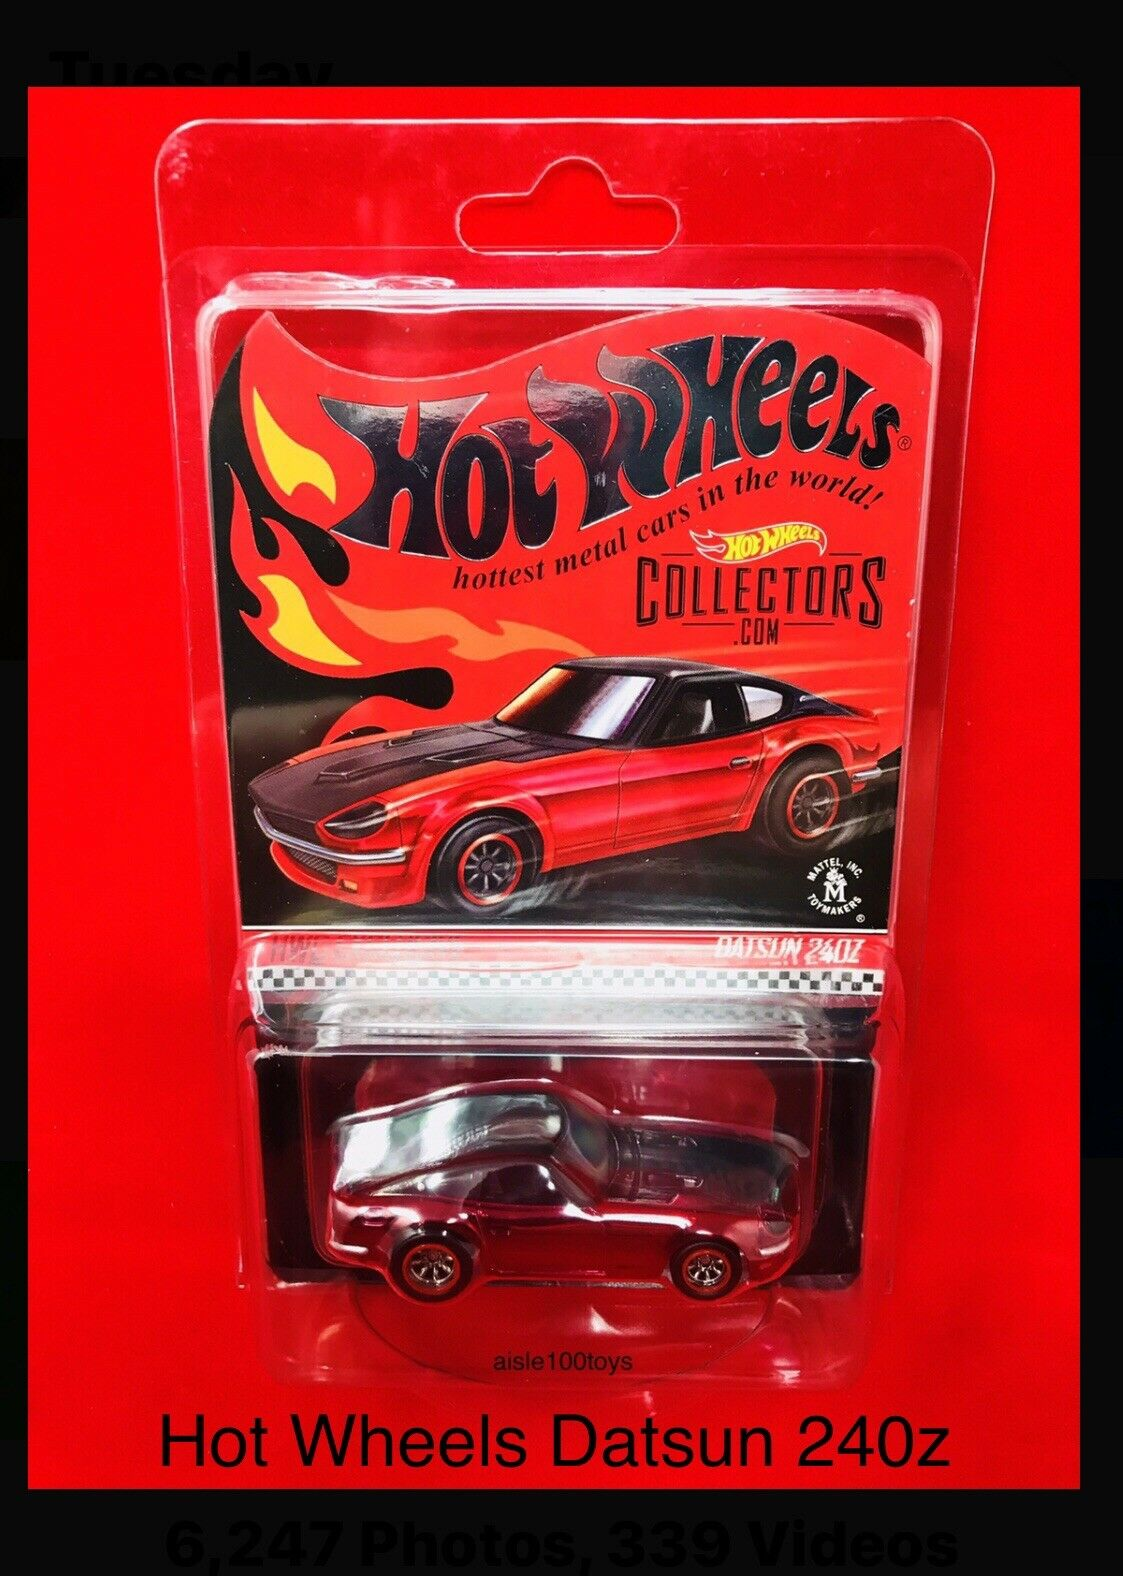 2018 Hot Wheels Datsun 240z RLC Exclusive In rosso Limited 6500 50th Anniversary